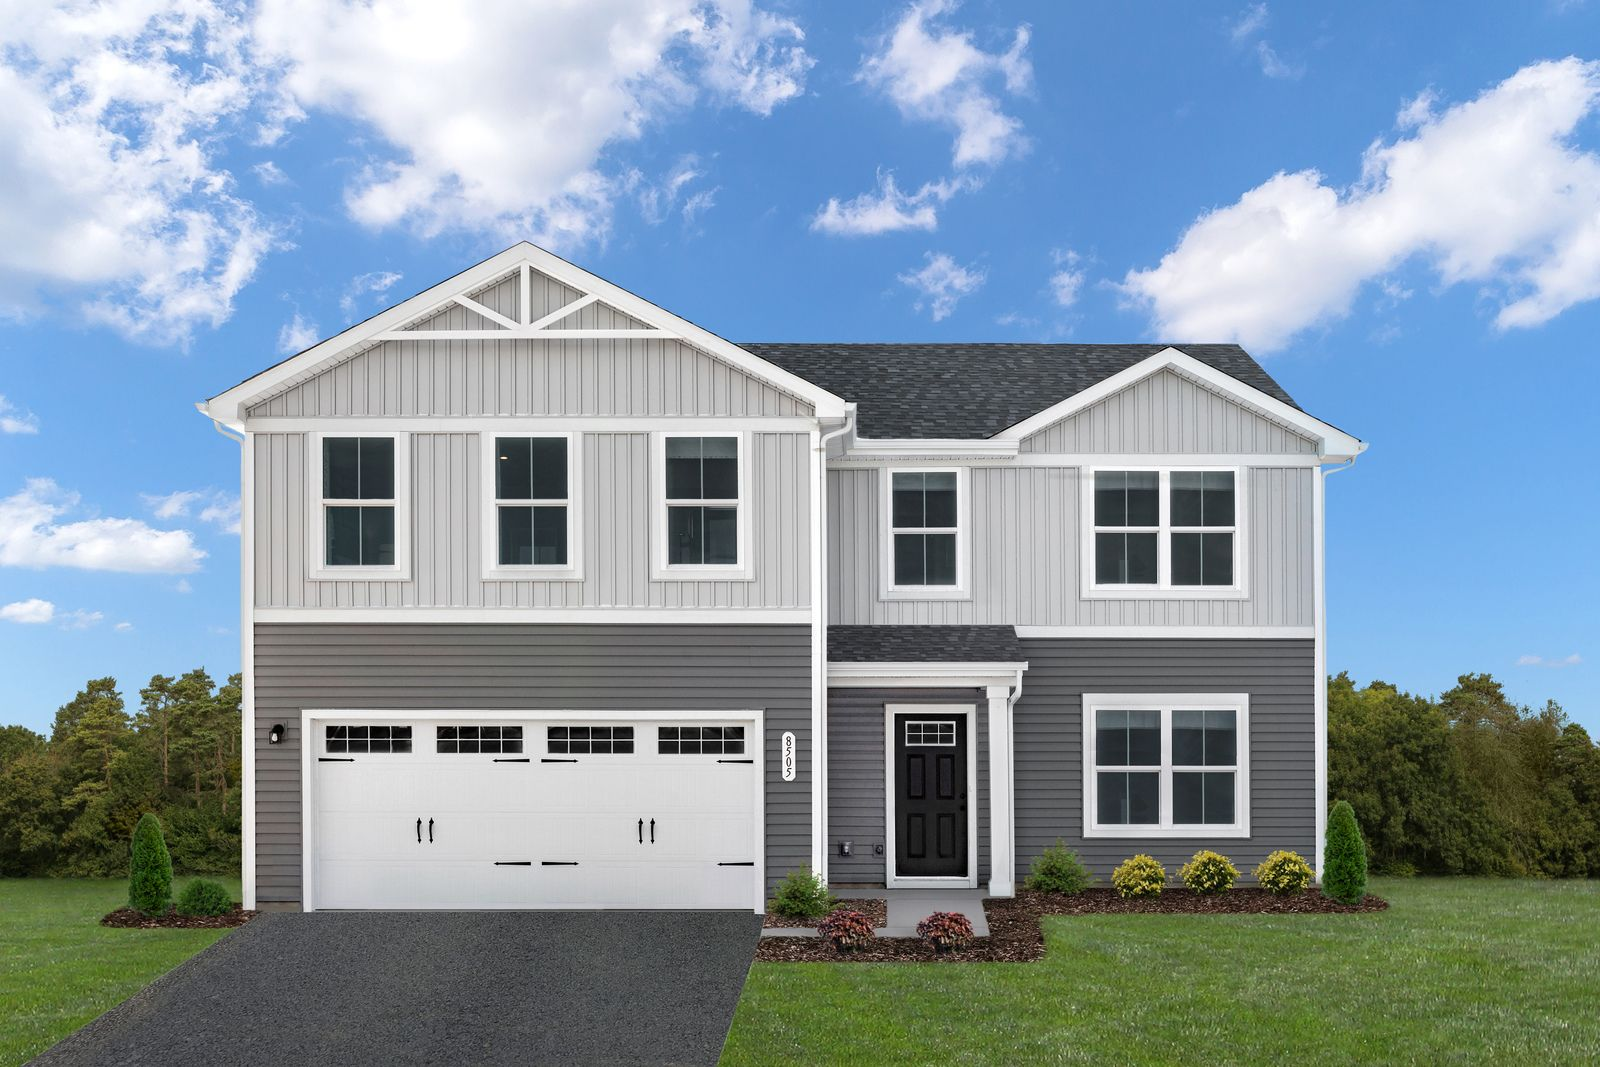 WELCOME TO THE OAKS: A PERFECT COMBINATION OF LOCATION, YARD SIZE AND NEW HOMES:New Kent's lowest-priced community featuring 4+ beds, 2.5 bath, 2-car garages and ½ acre lots! Own a new home for as low as $1631 a month*Schedule your visit today!